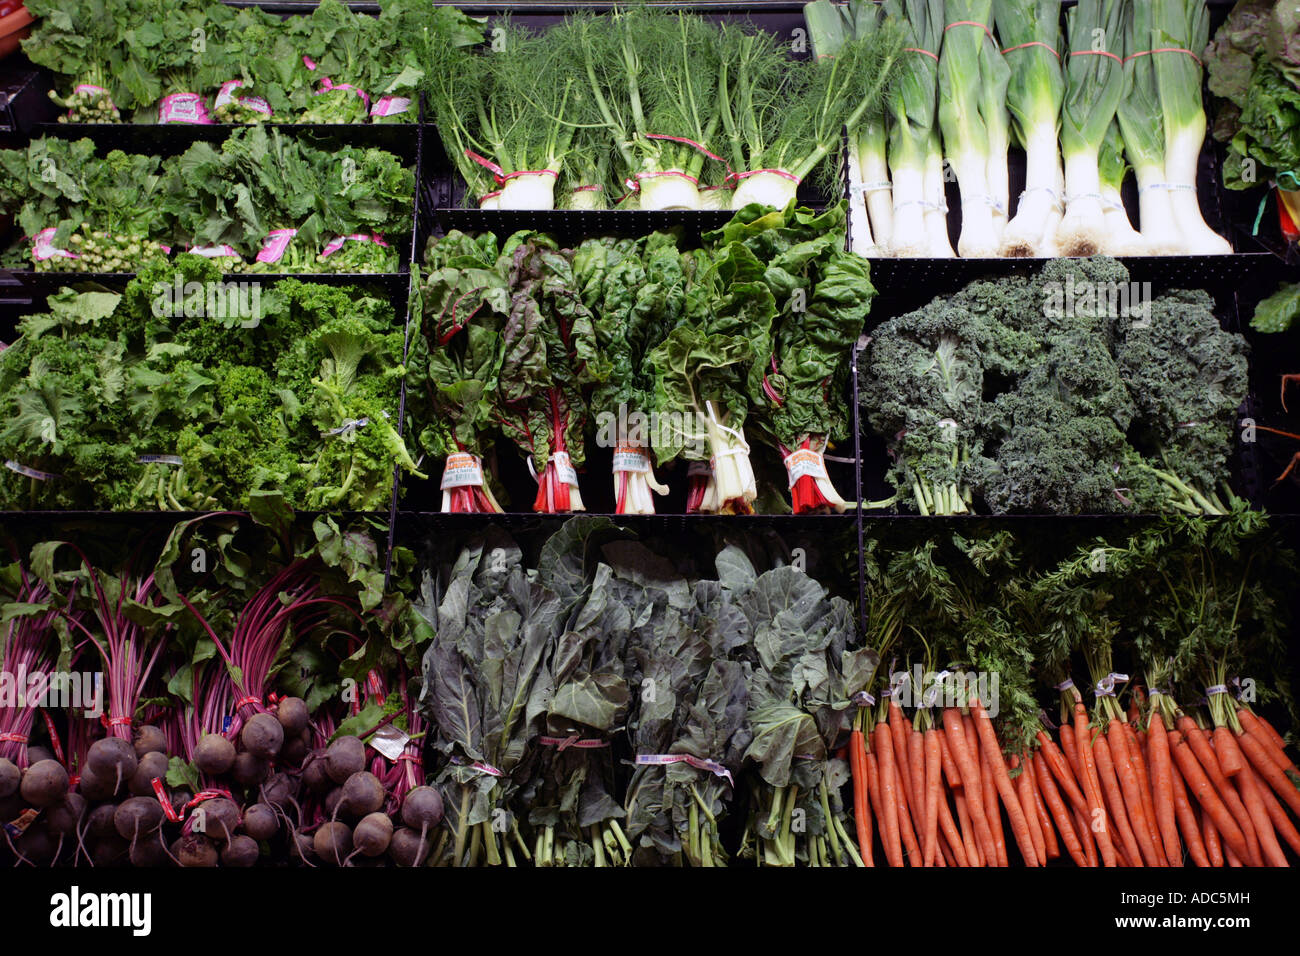 Organic Foods in a supermarket display case. Healthy eating health foods. Greens Stock Photo